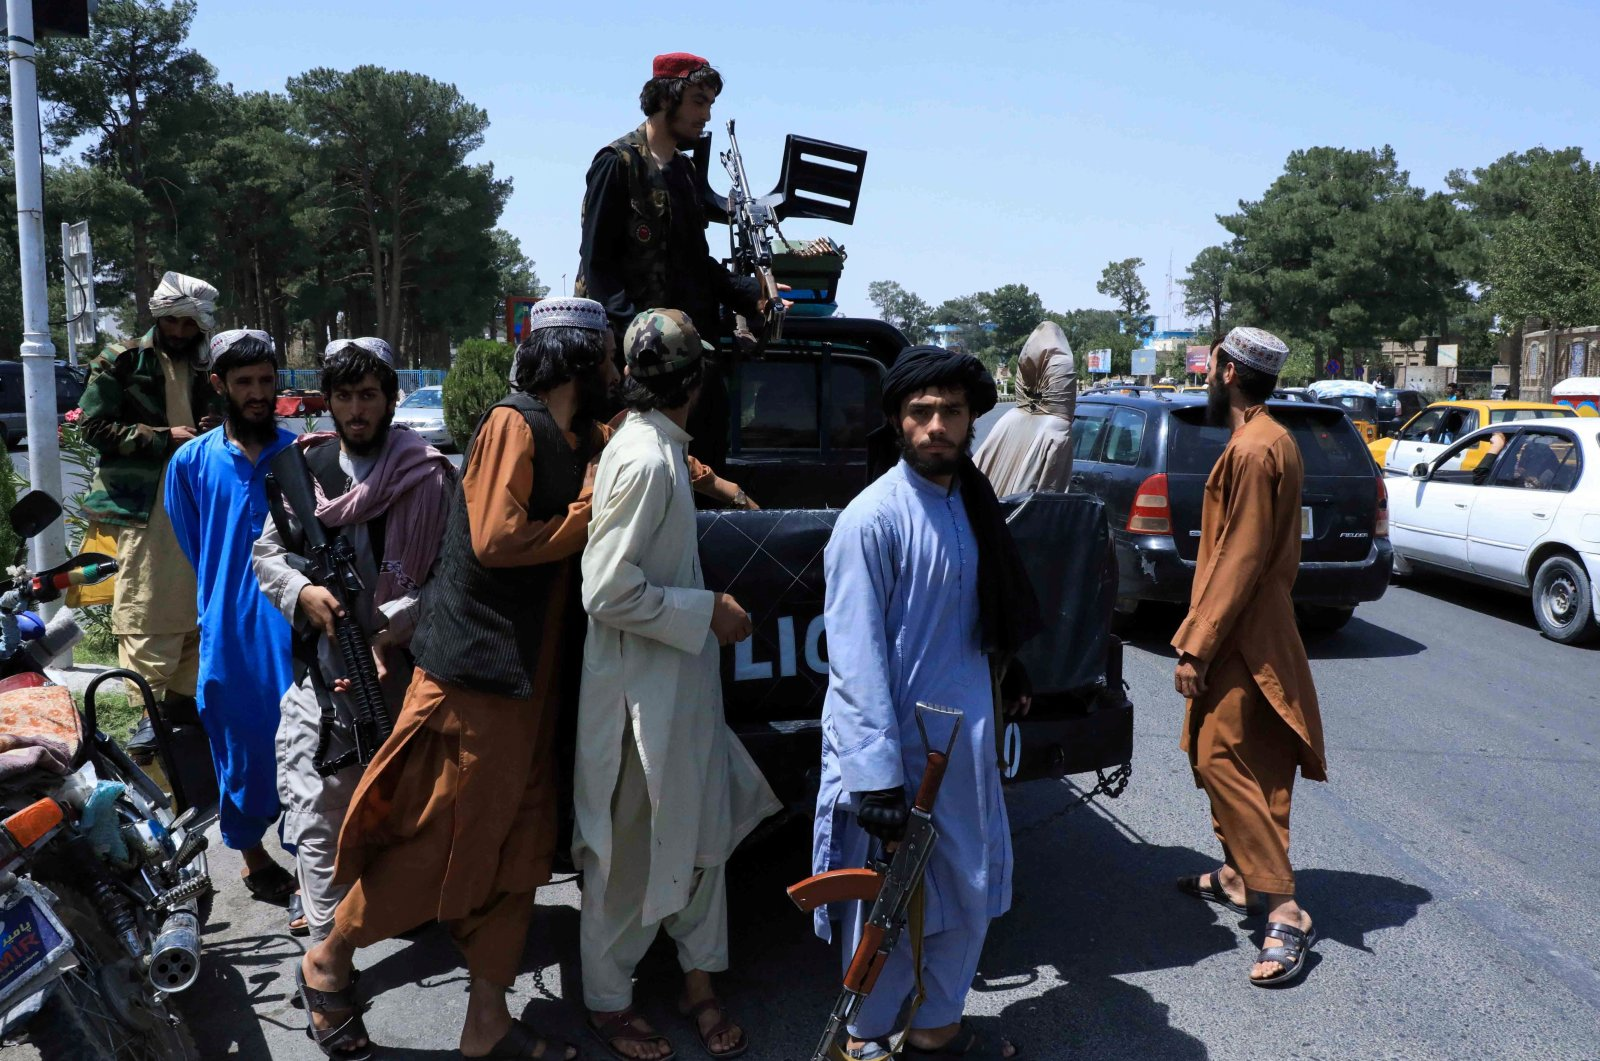 Taliban forces patrol a street in Herat, Afghanistan, Aug. 14, 2021. (Reuters Photo)